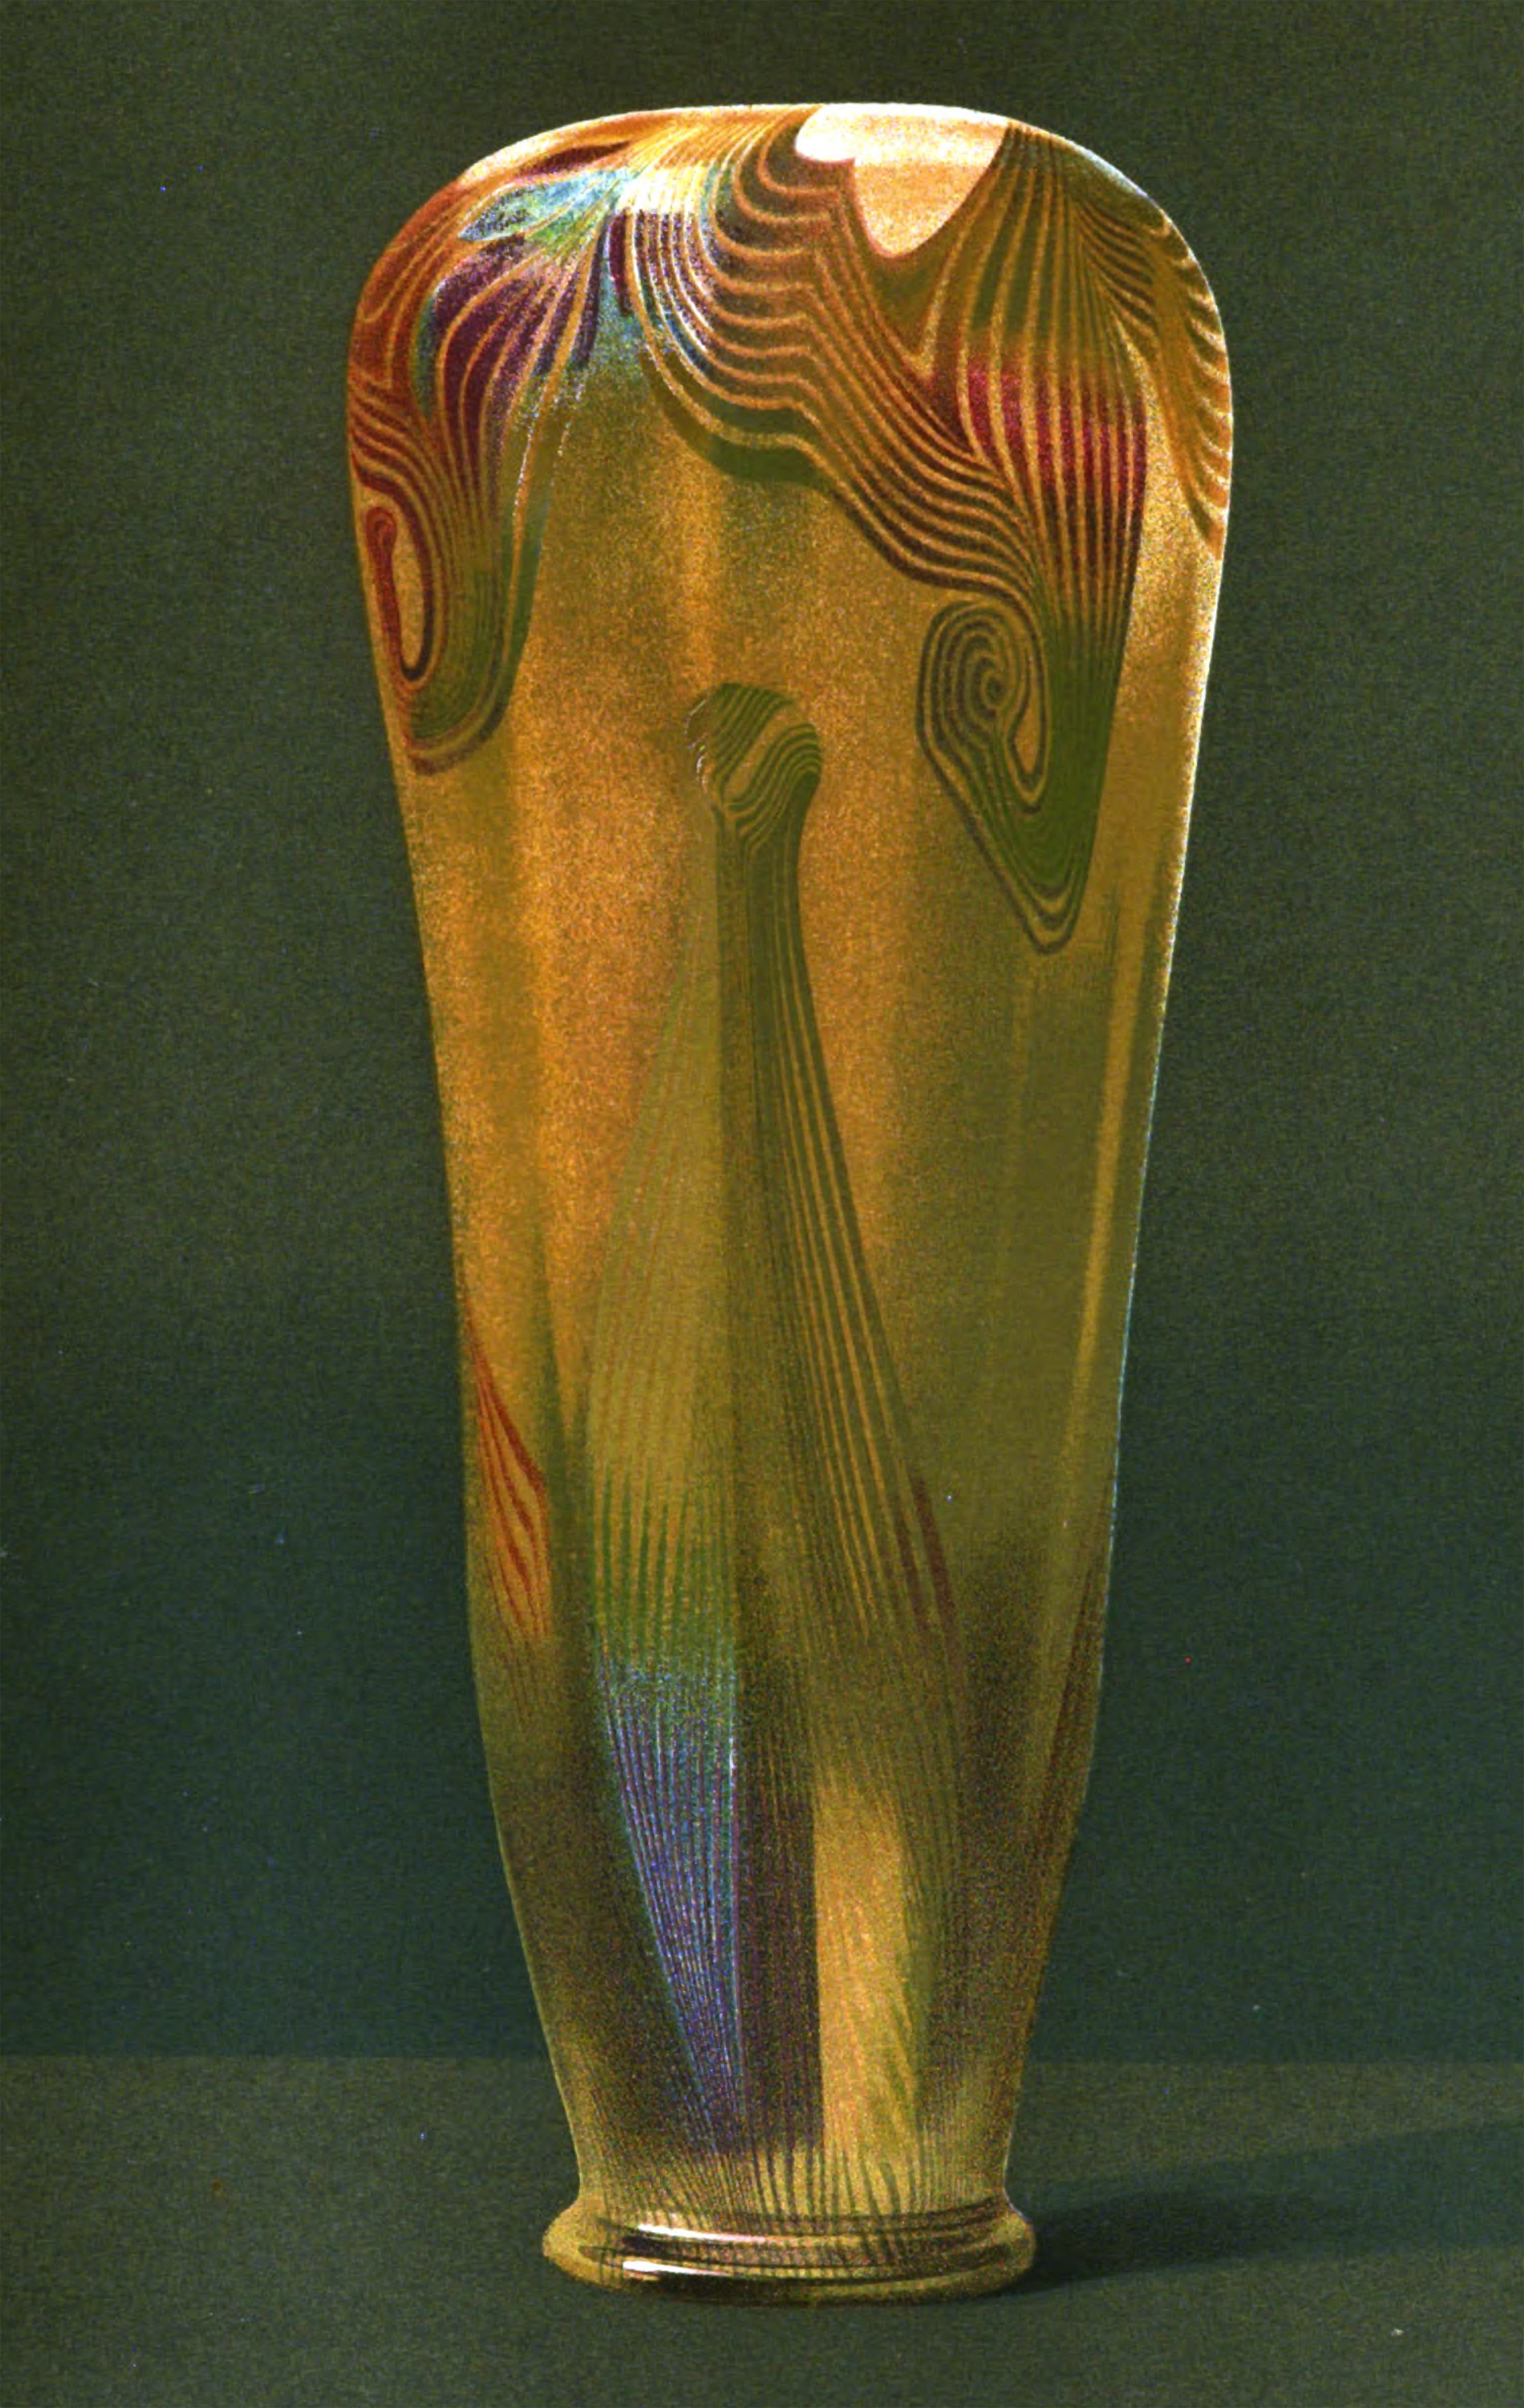 Art Et Decoration Tiffany Vase From Art Et Decoration Circa 1903